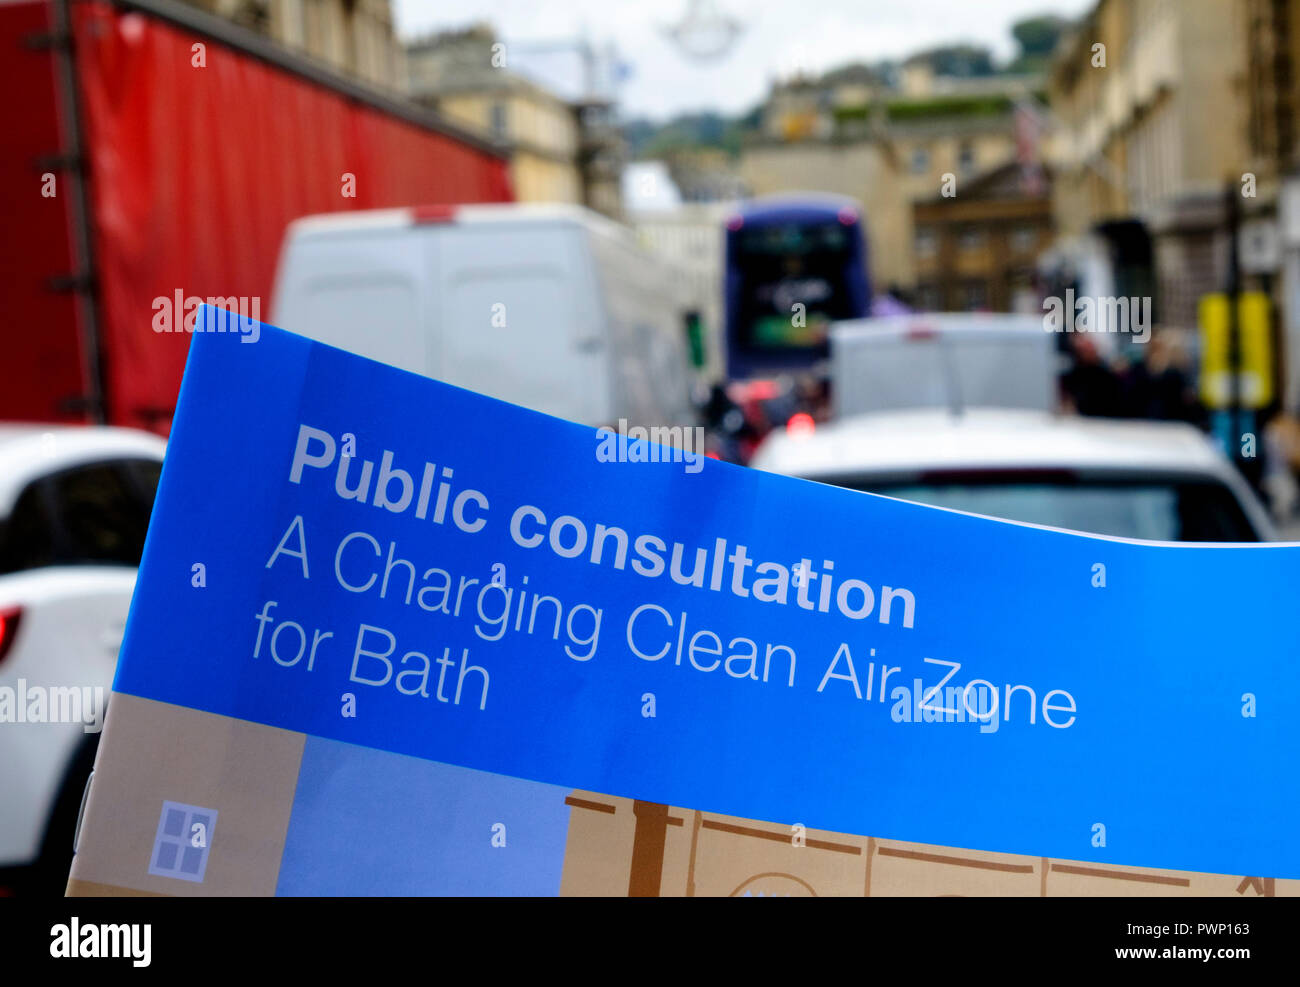 Bath, Somerset, UK. 17th Oct 2018. Bath and North East Somerset Council are taking action about the poor air quality in Bath city center. To reduce NO2 levels in the city they propose to charge drivers of high polluting vehicles to drive in the city center from 2020 © JMF News/Alamy Live News - Stock Image